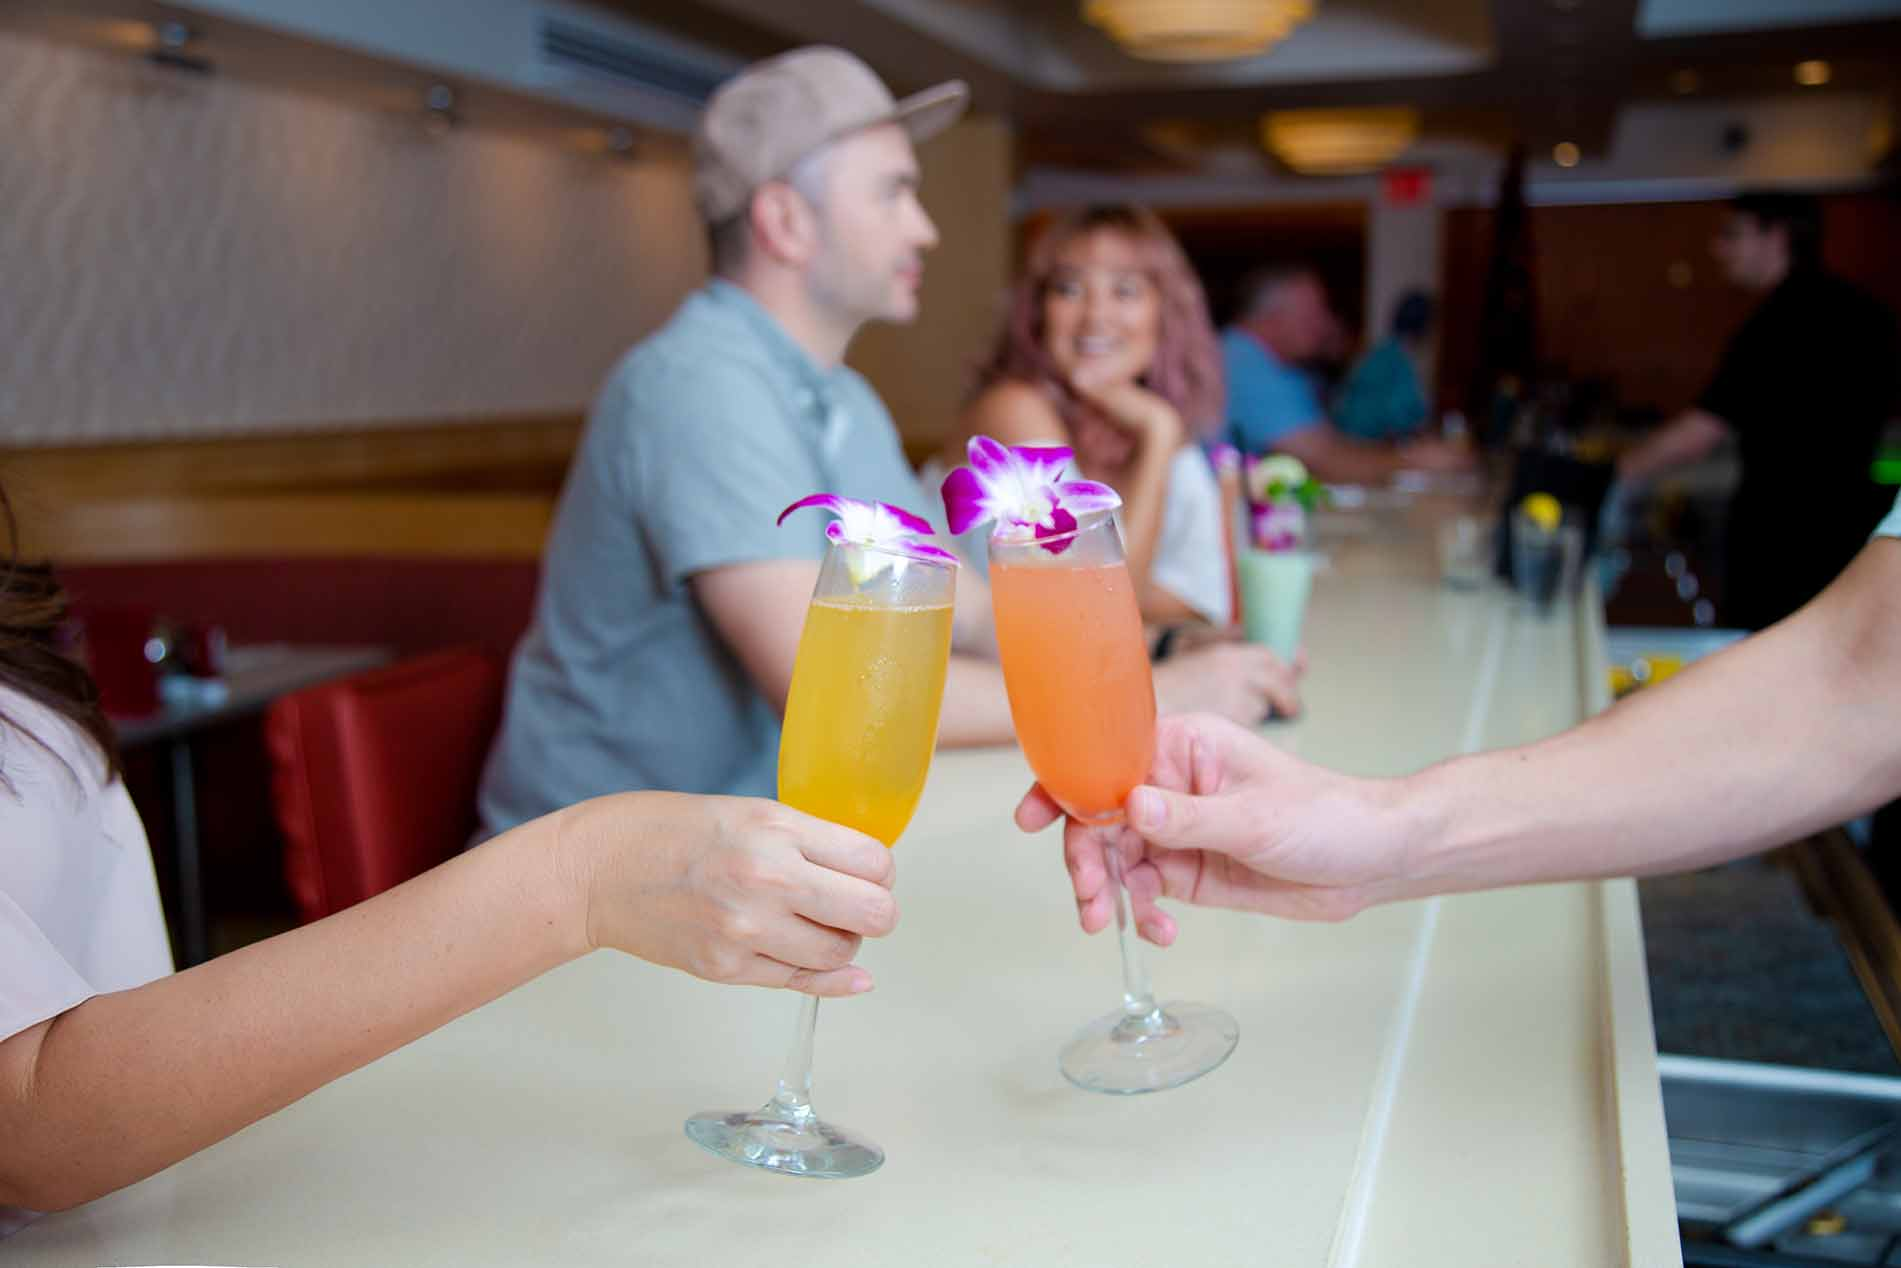 M.A.C. 24/7 Mimosa Brunch Happy Hour